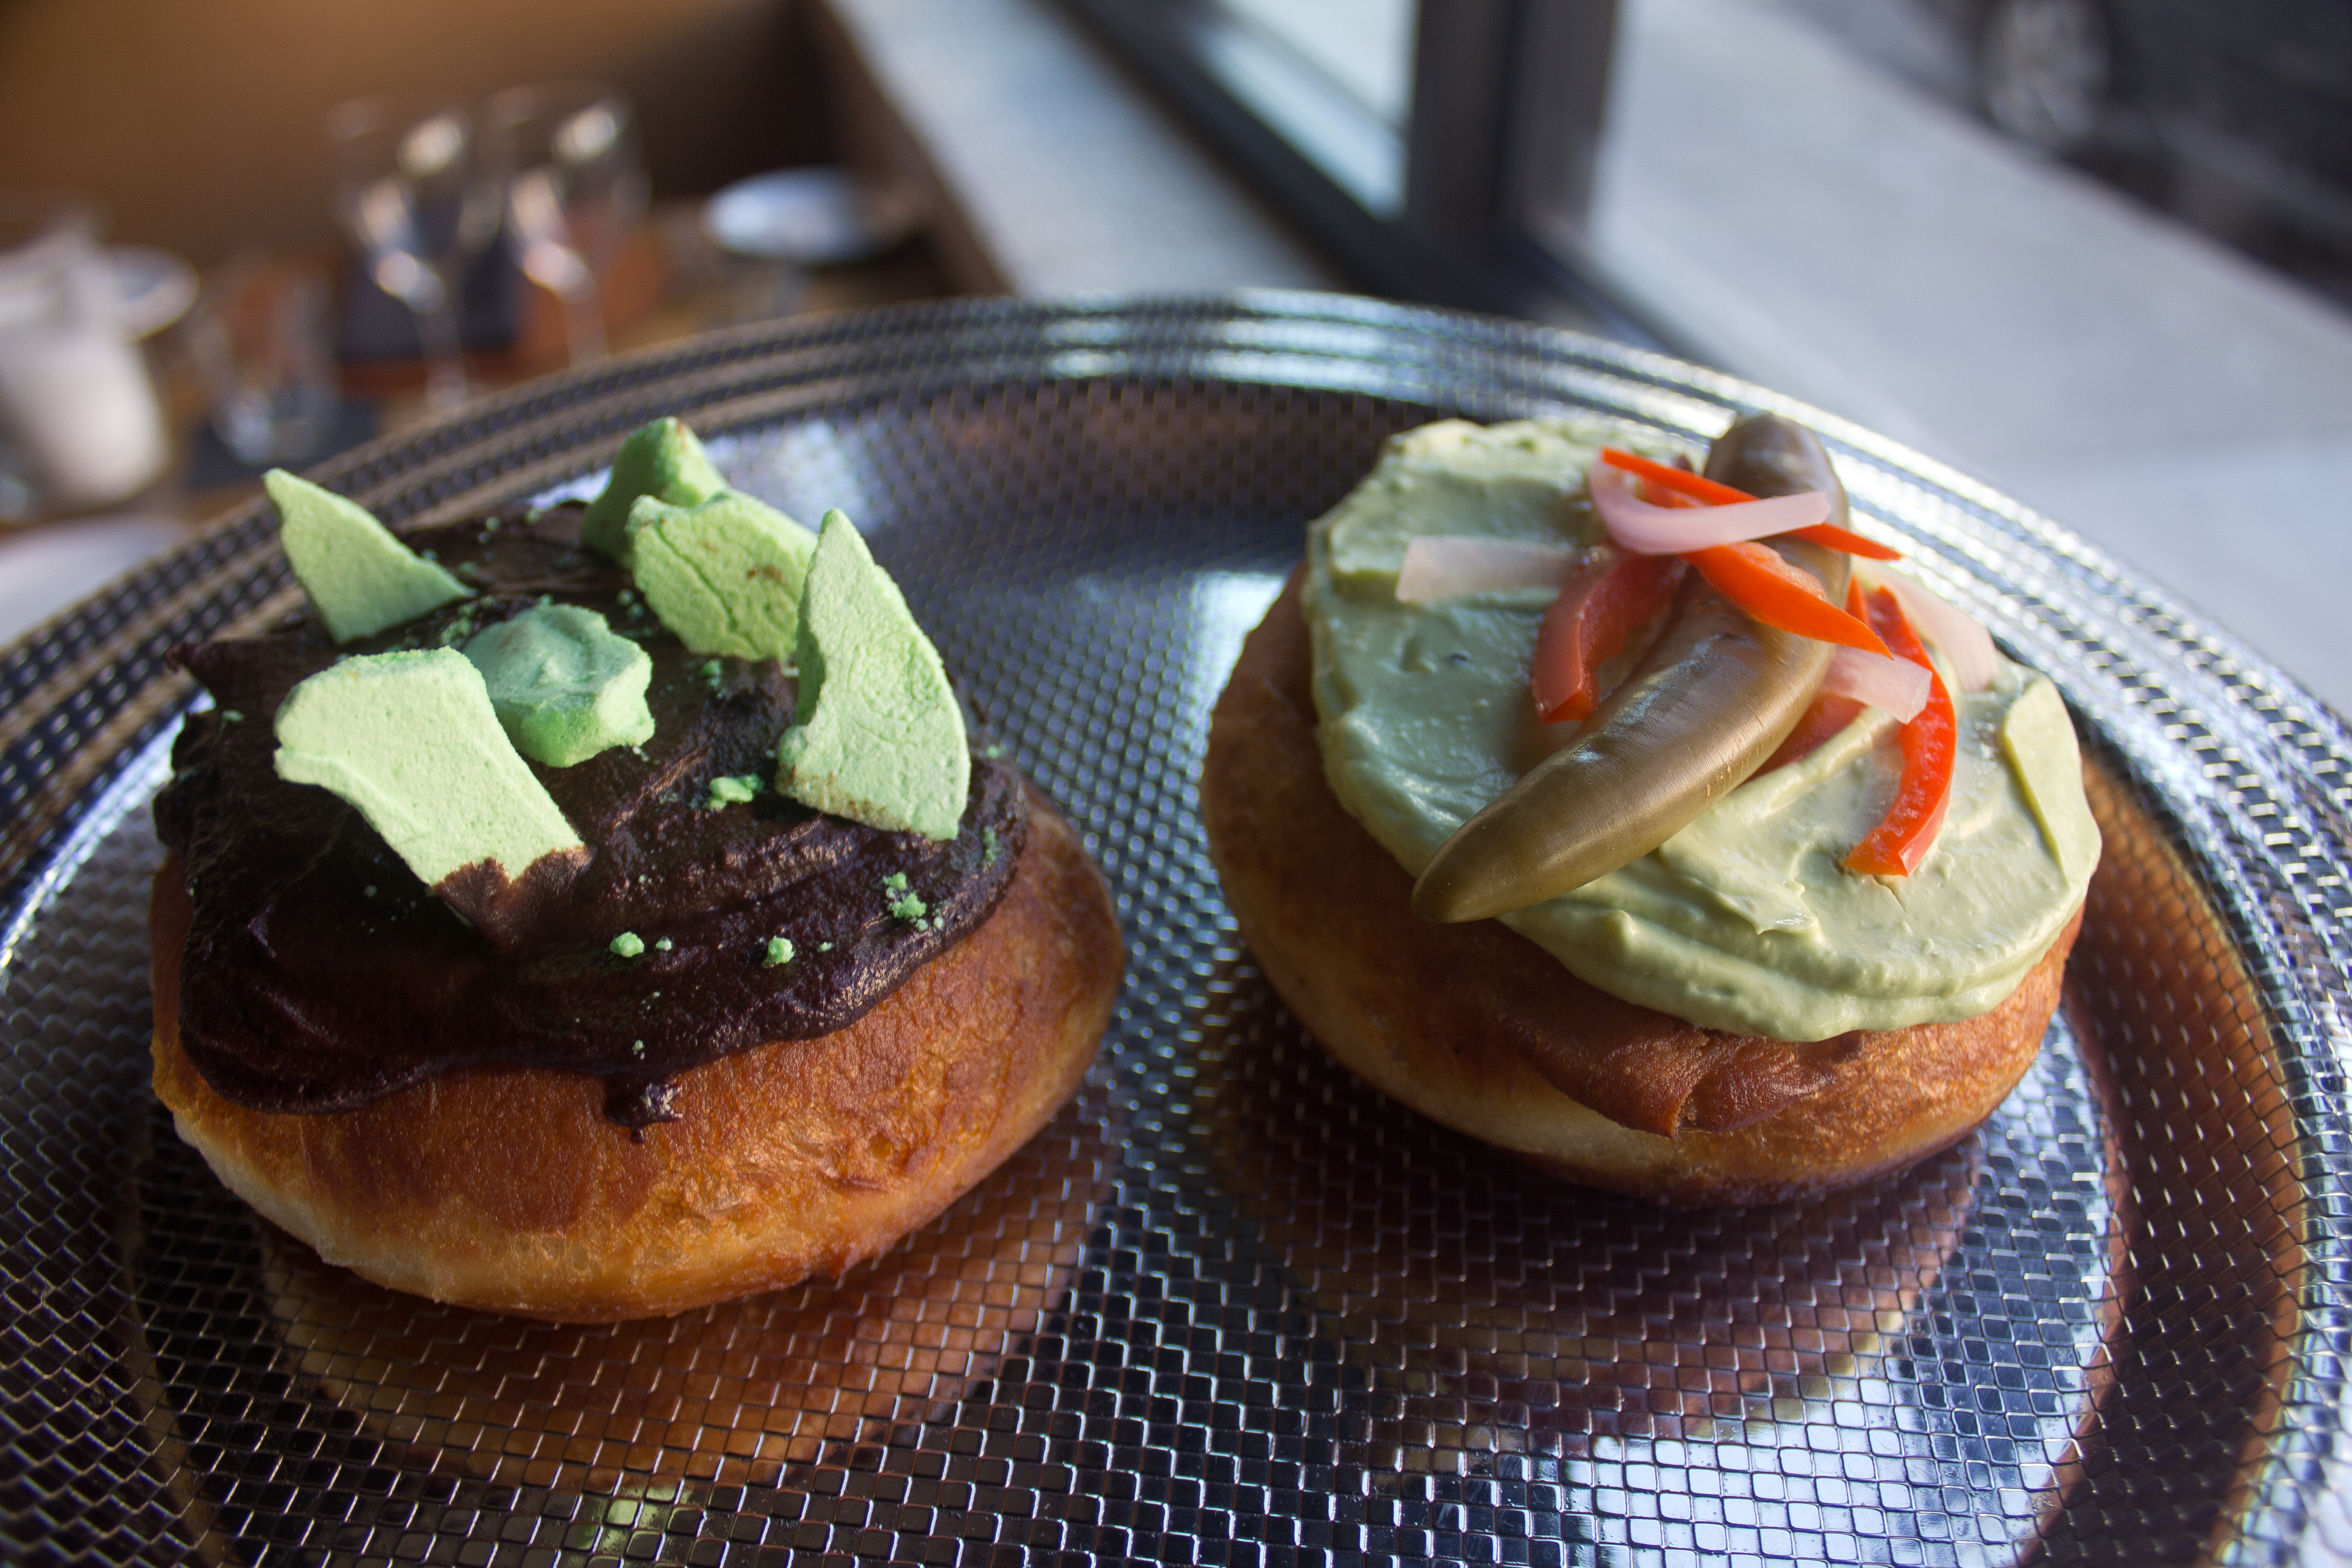 Back Dough's chocolate thick mint and pulled pork doughnuts